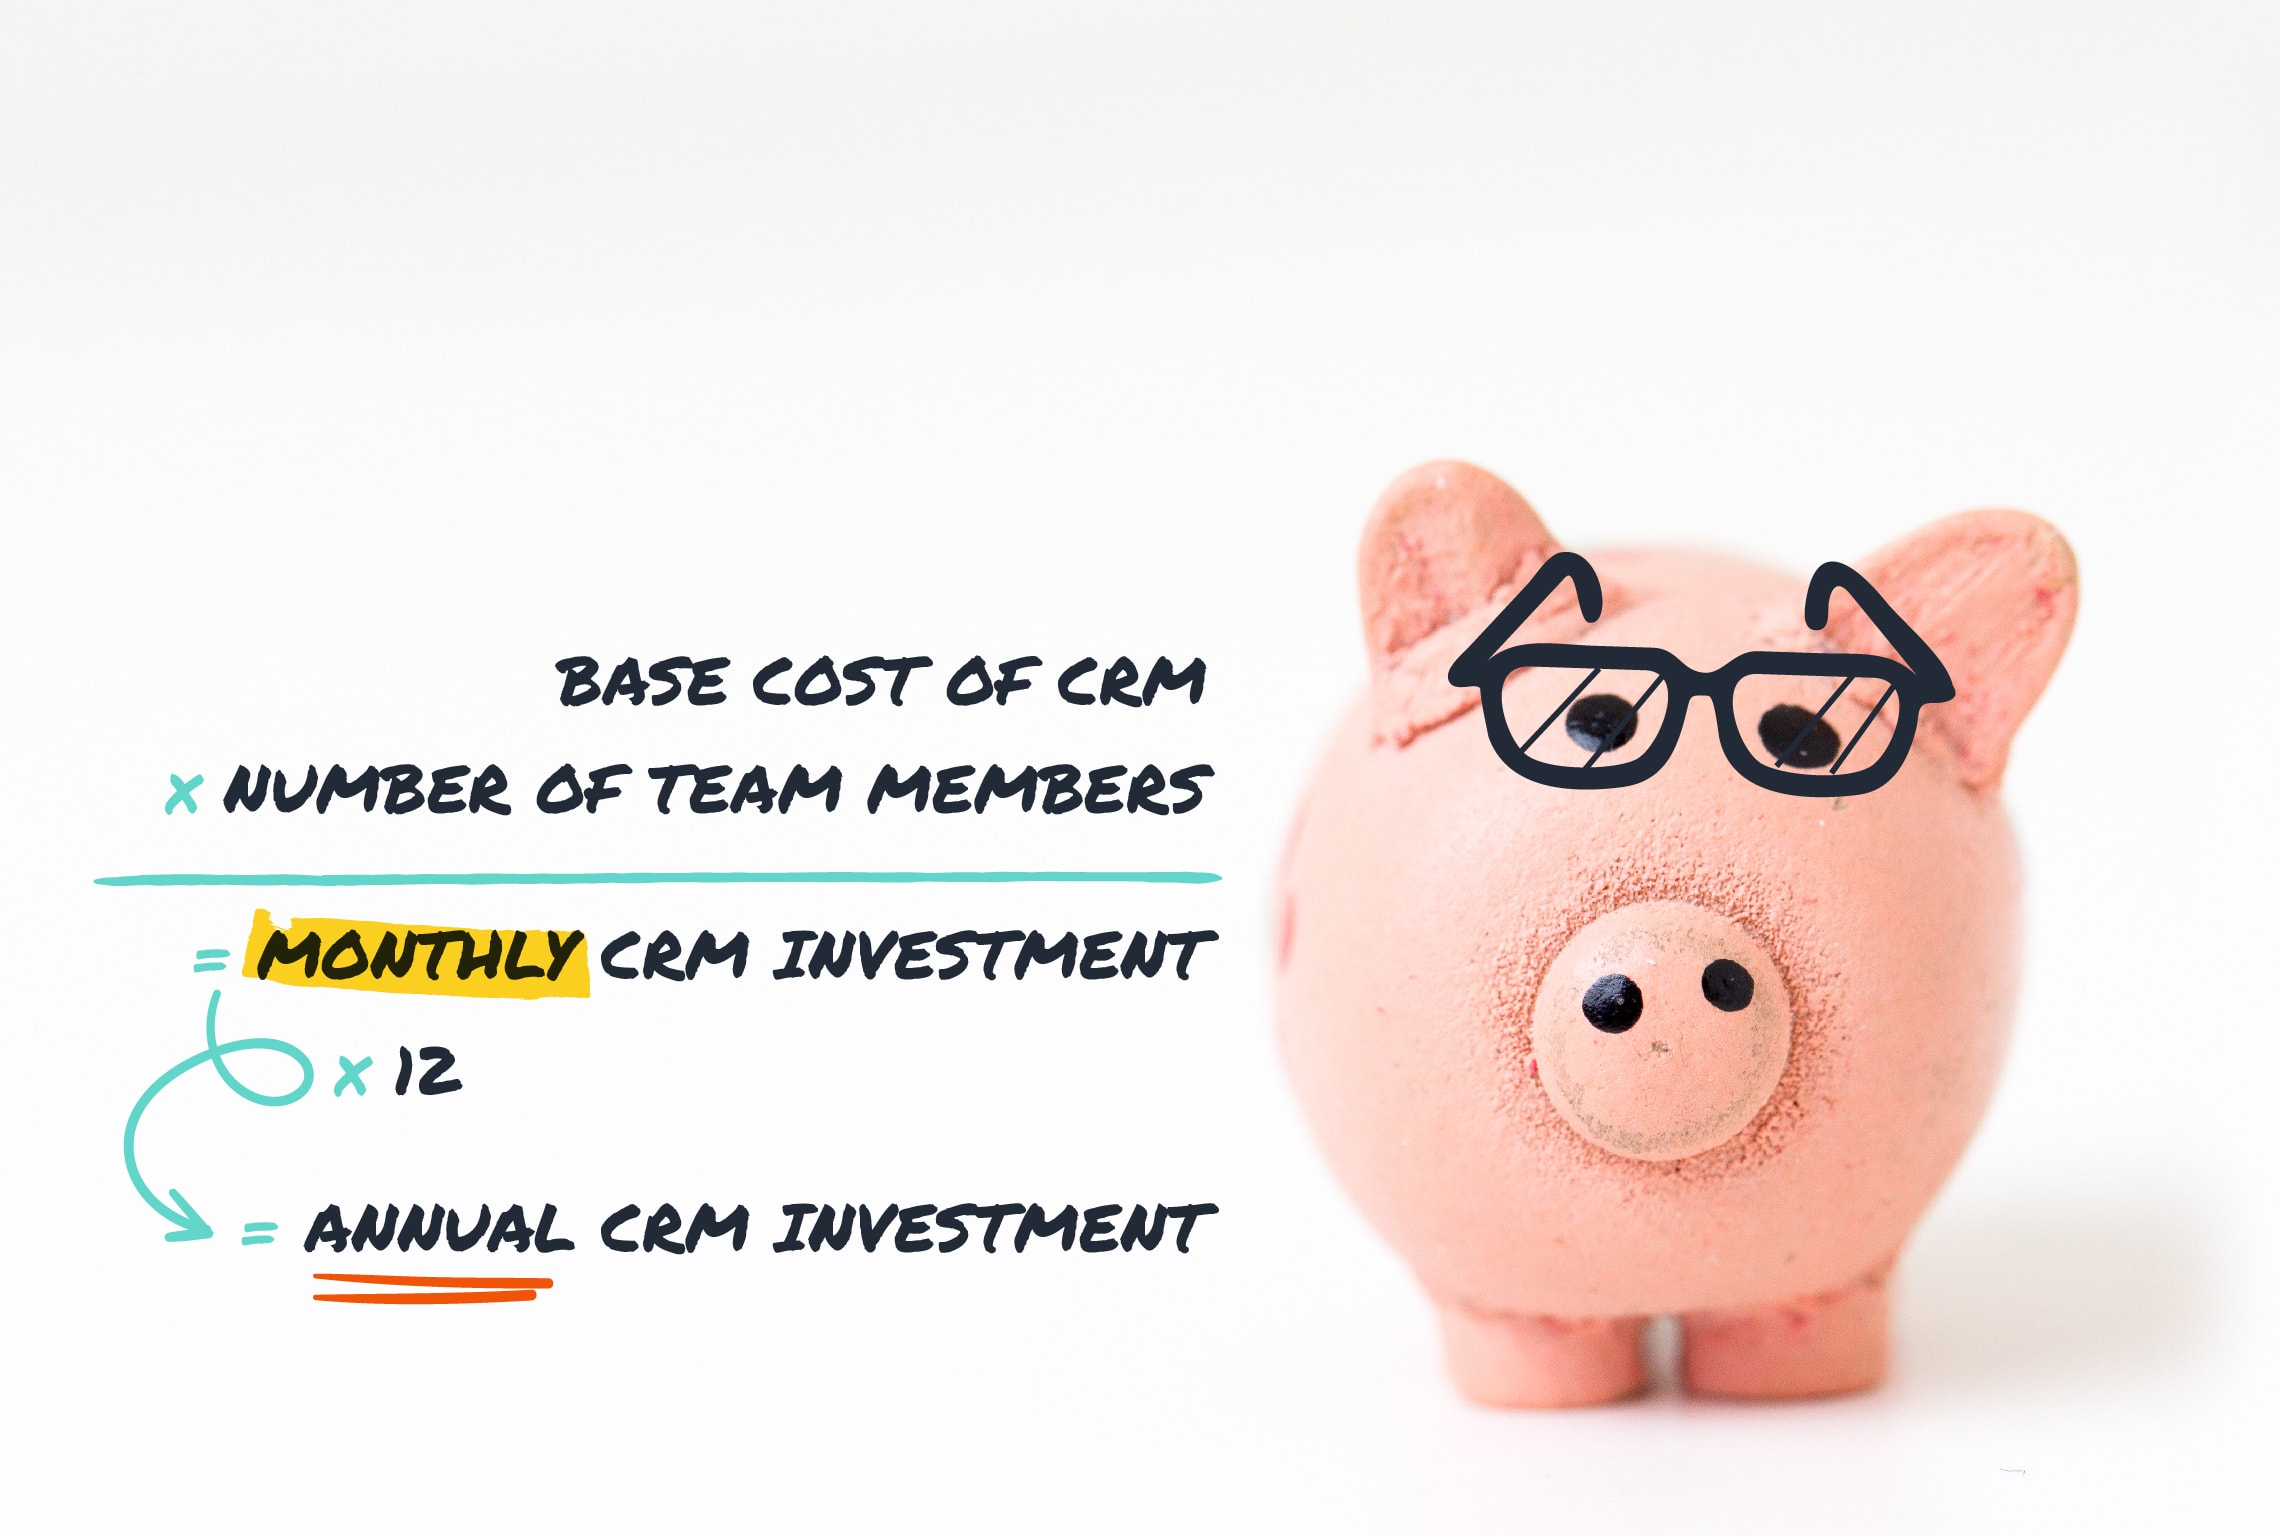 How much does CRM cost?